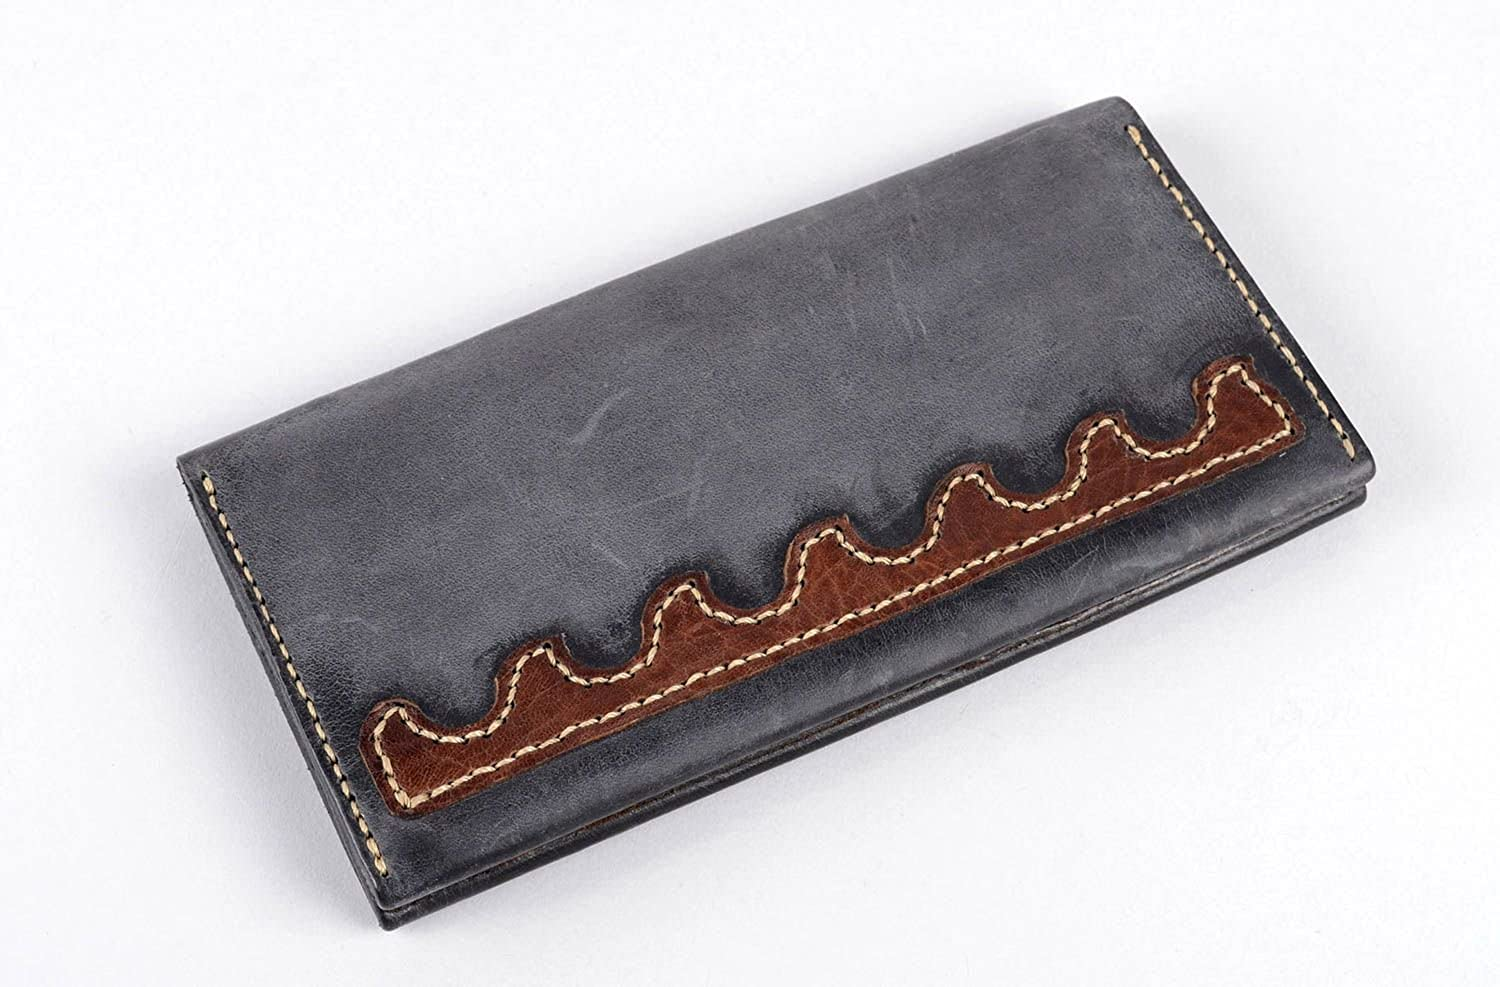 Handmade Wallet Leather Wallet Designer Wallets For Women Leather Purse